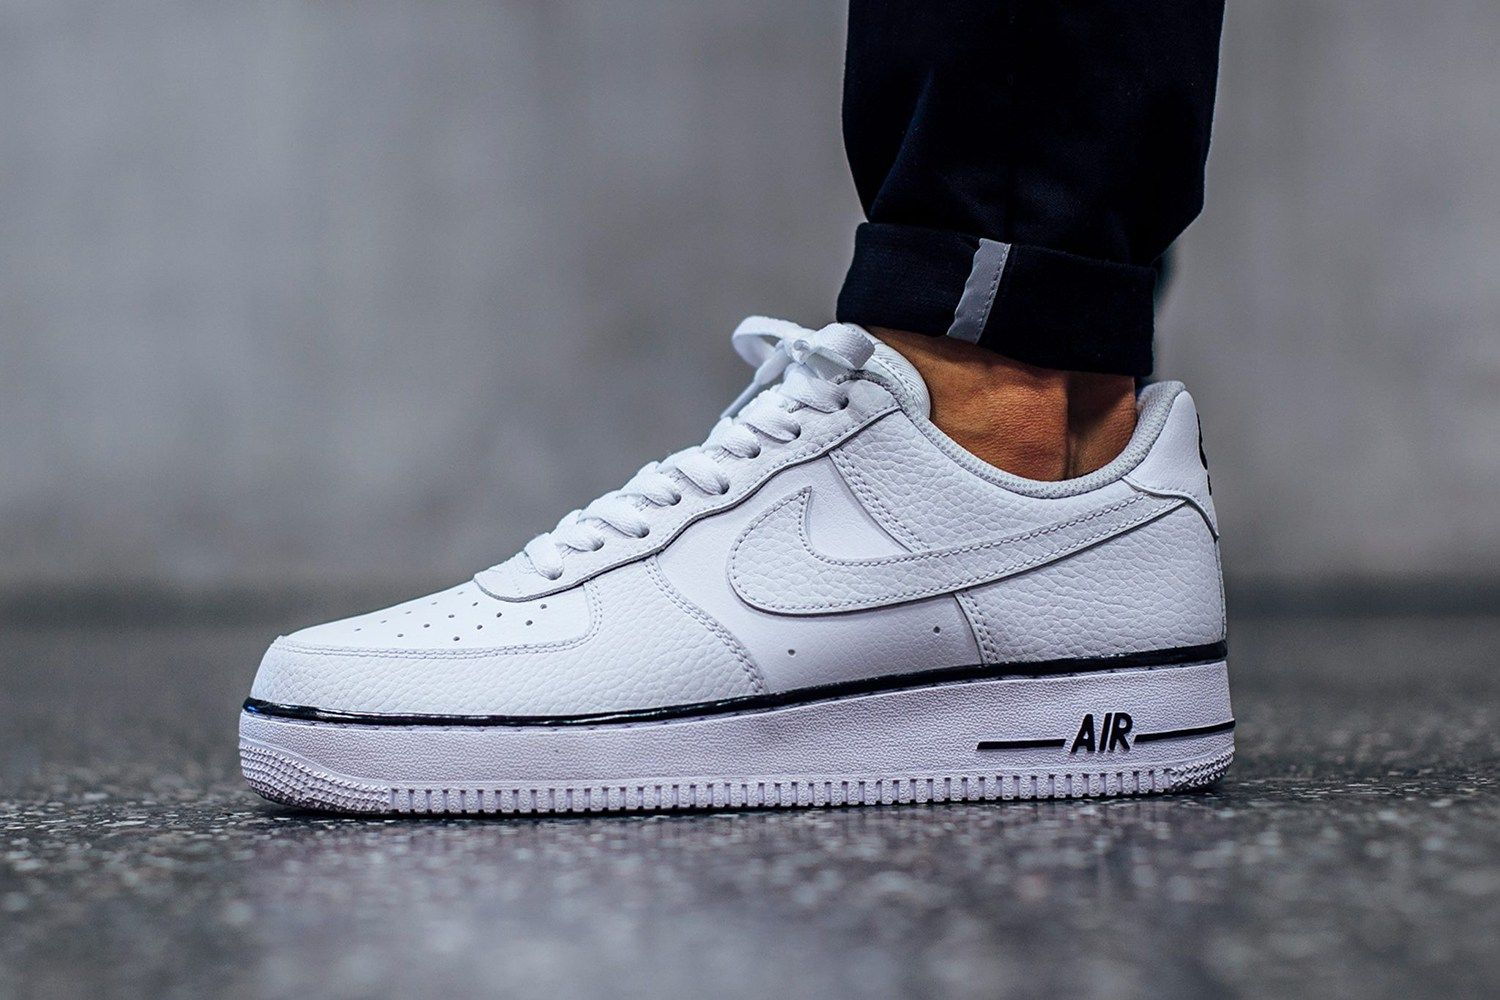 nike air force 1 white low menstrual cramps